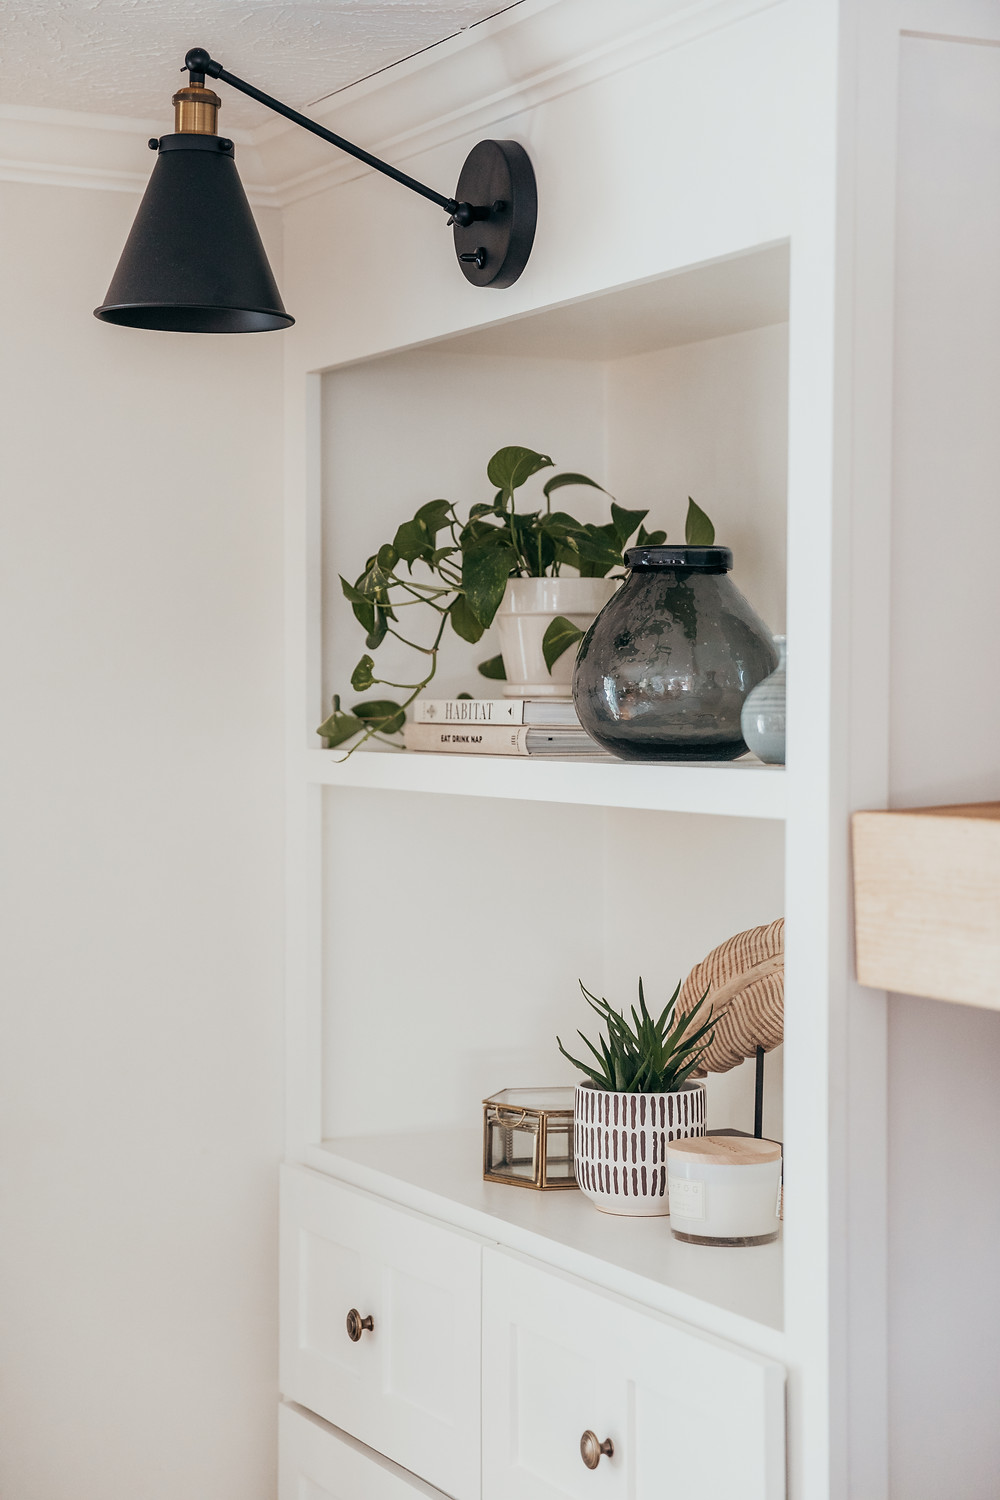 Shelf styling by Christine McCall Home, a Pittsburgh based interior designer